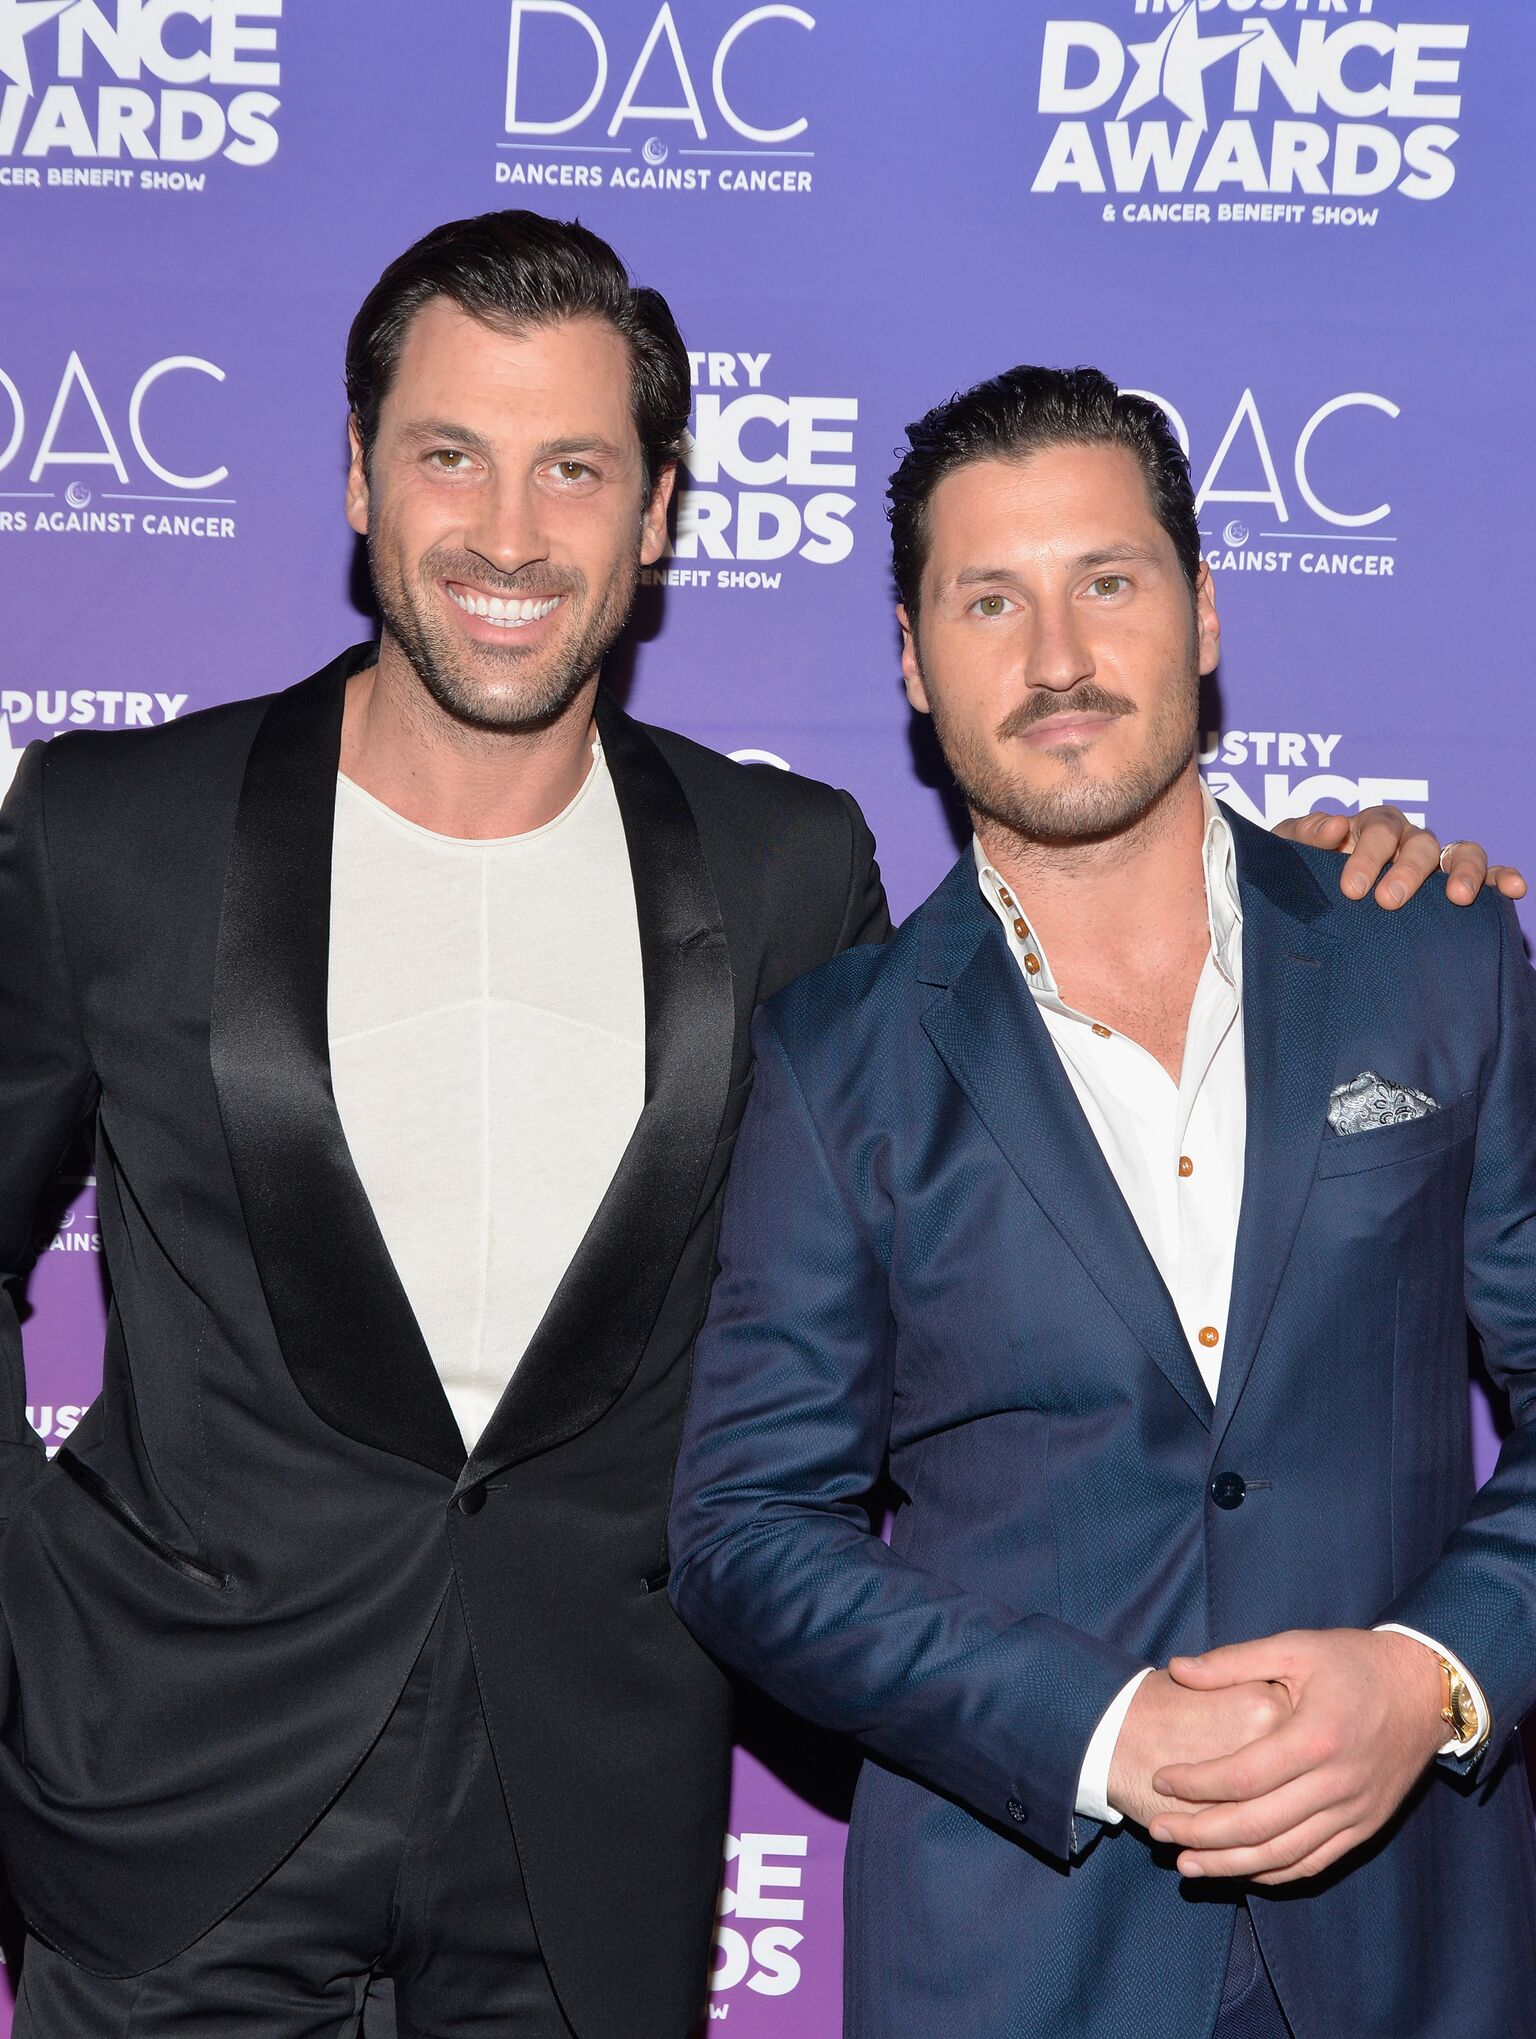 rofessional dancers Maksim Chmerkovskiy and Val Chmerkovskiy attend the 2017 Industry Dance Awards and Cancer Benefit Show | Getty Images